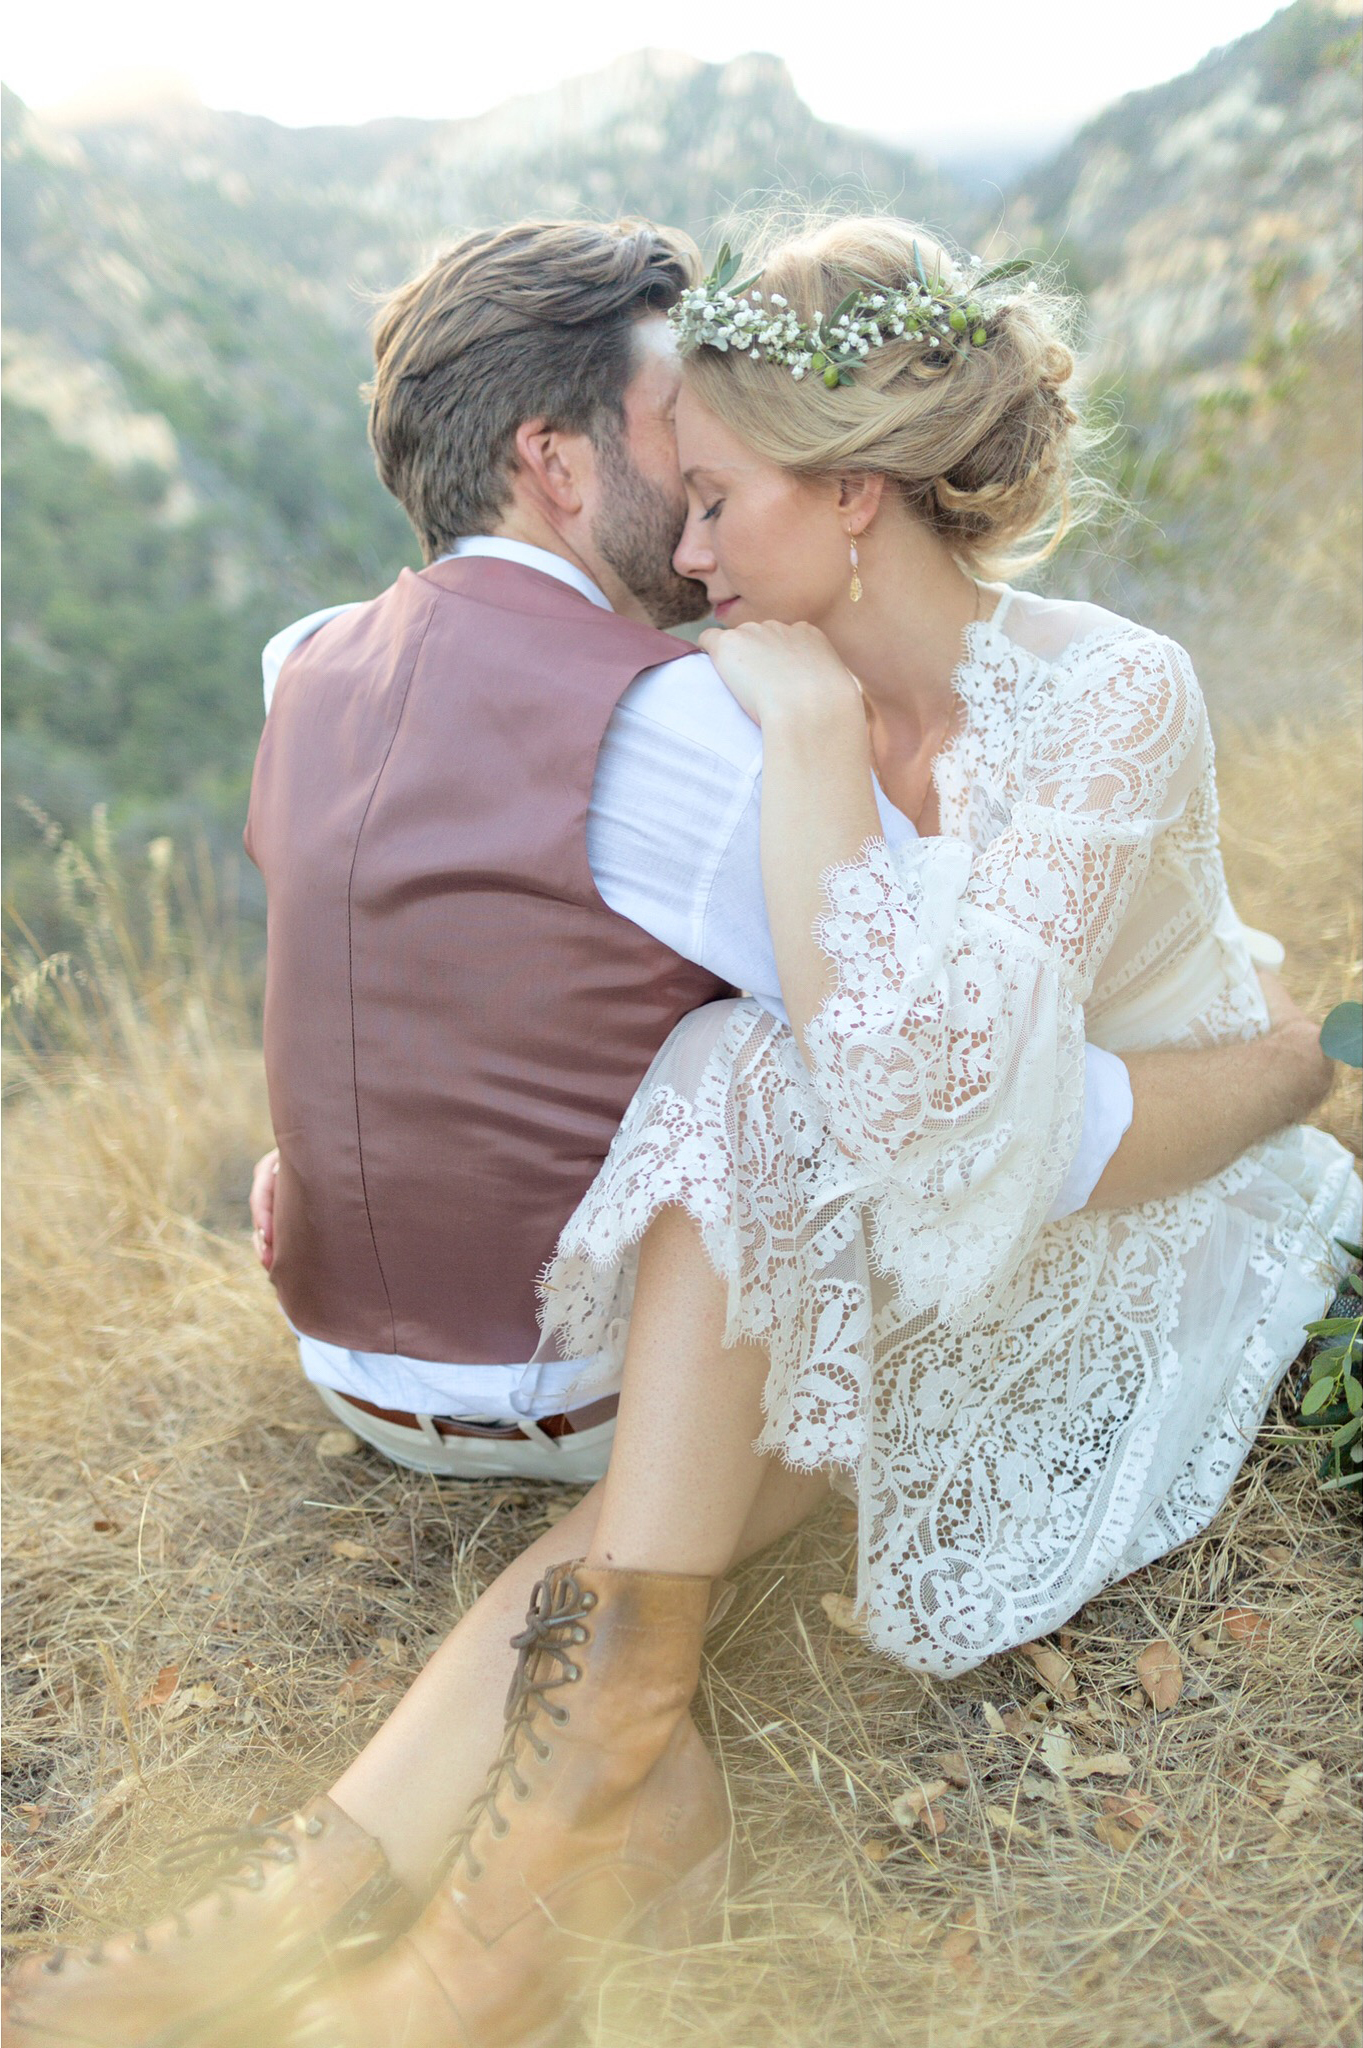 Wonder-Tribe-Wedding-Photography-Santa-Barbara-Boho-Woodland-Nature-Lenna&Gabe-.jpeg